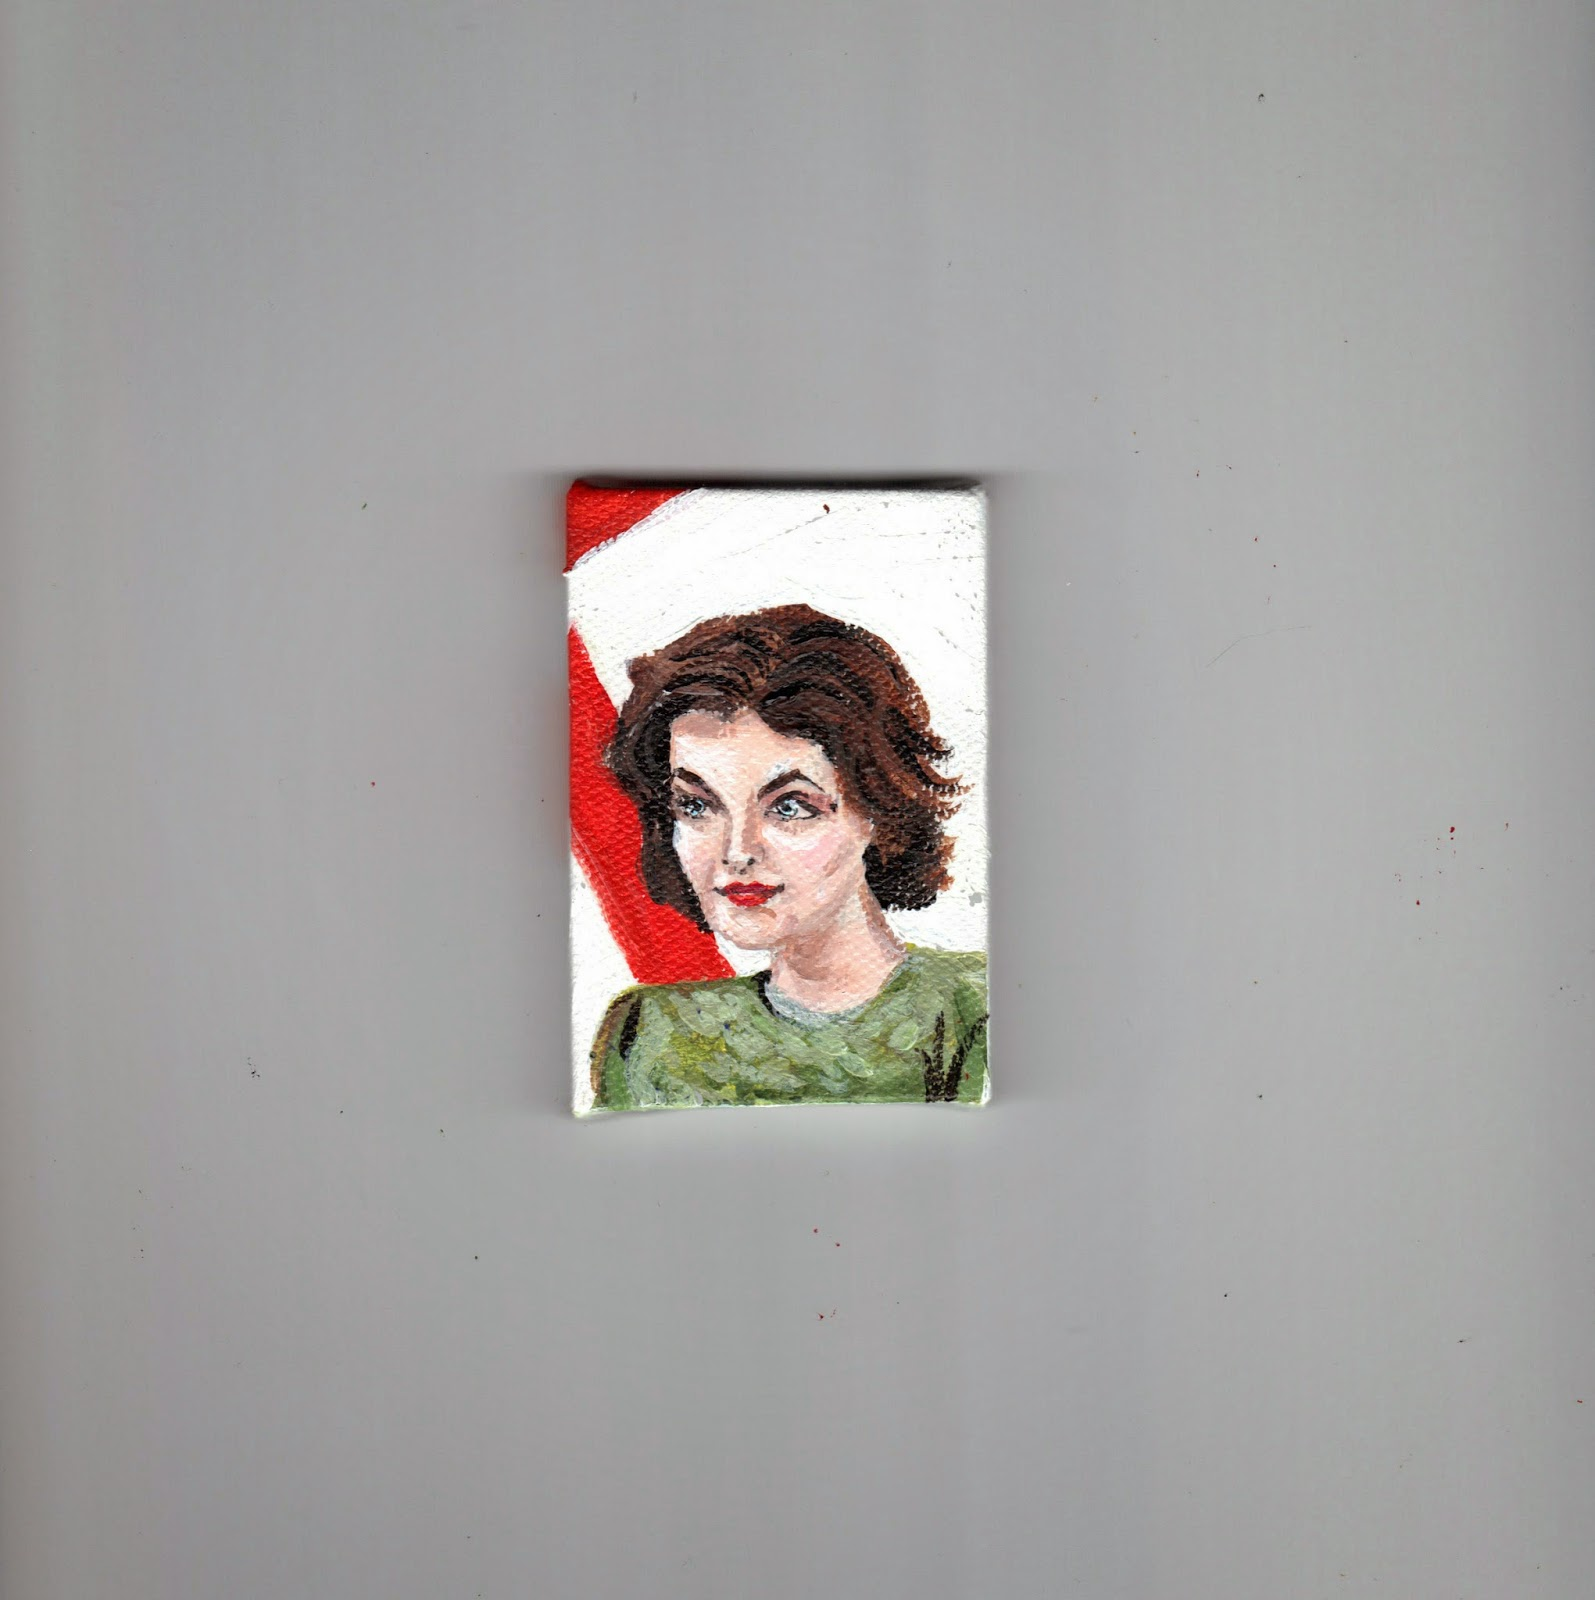 https://www.etsy.com/listing/171729347/miniature-painting-twin-peaks-audrey?ref=shop_home_active_4